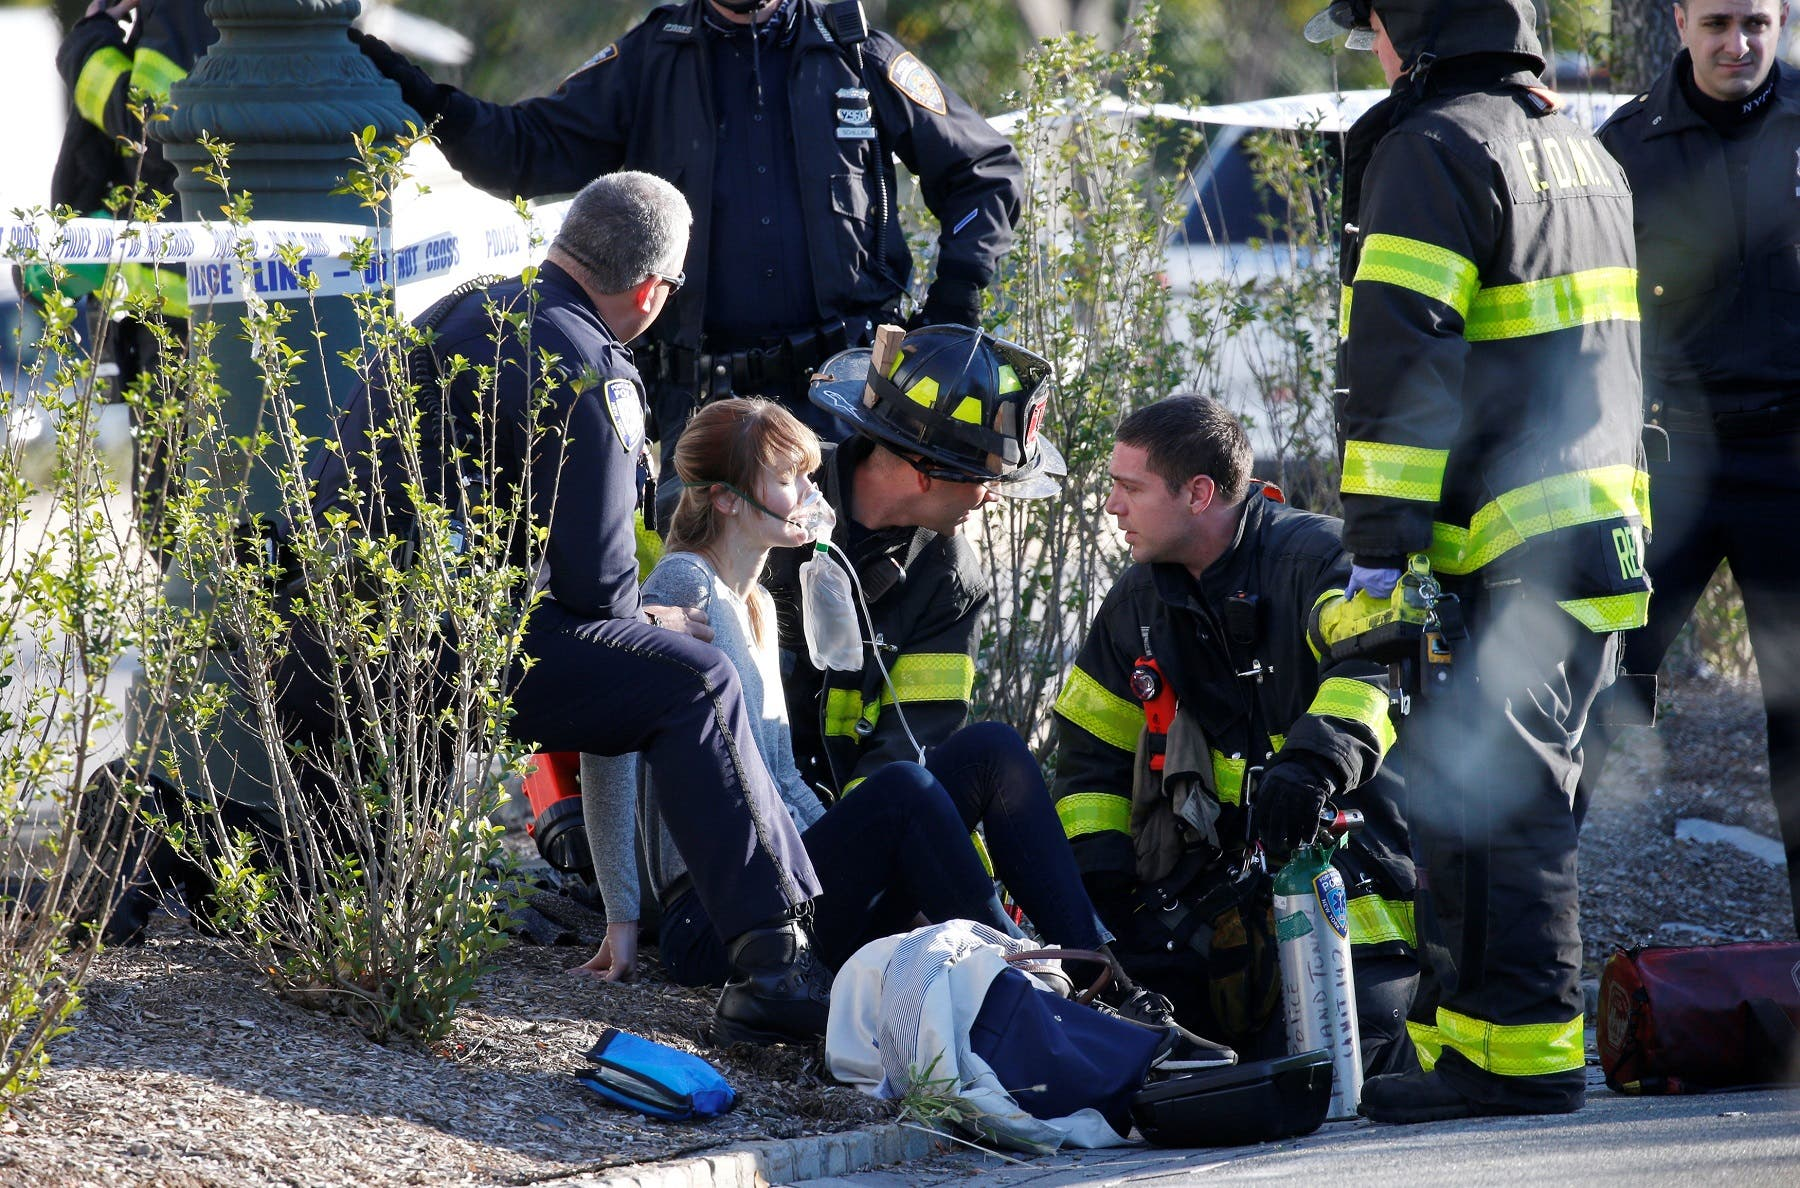 A woman is aided by first responders after sustaining injury on a bike path in lower Manhattan in New York. (Reuters)